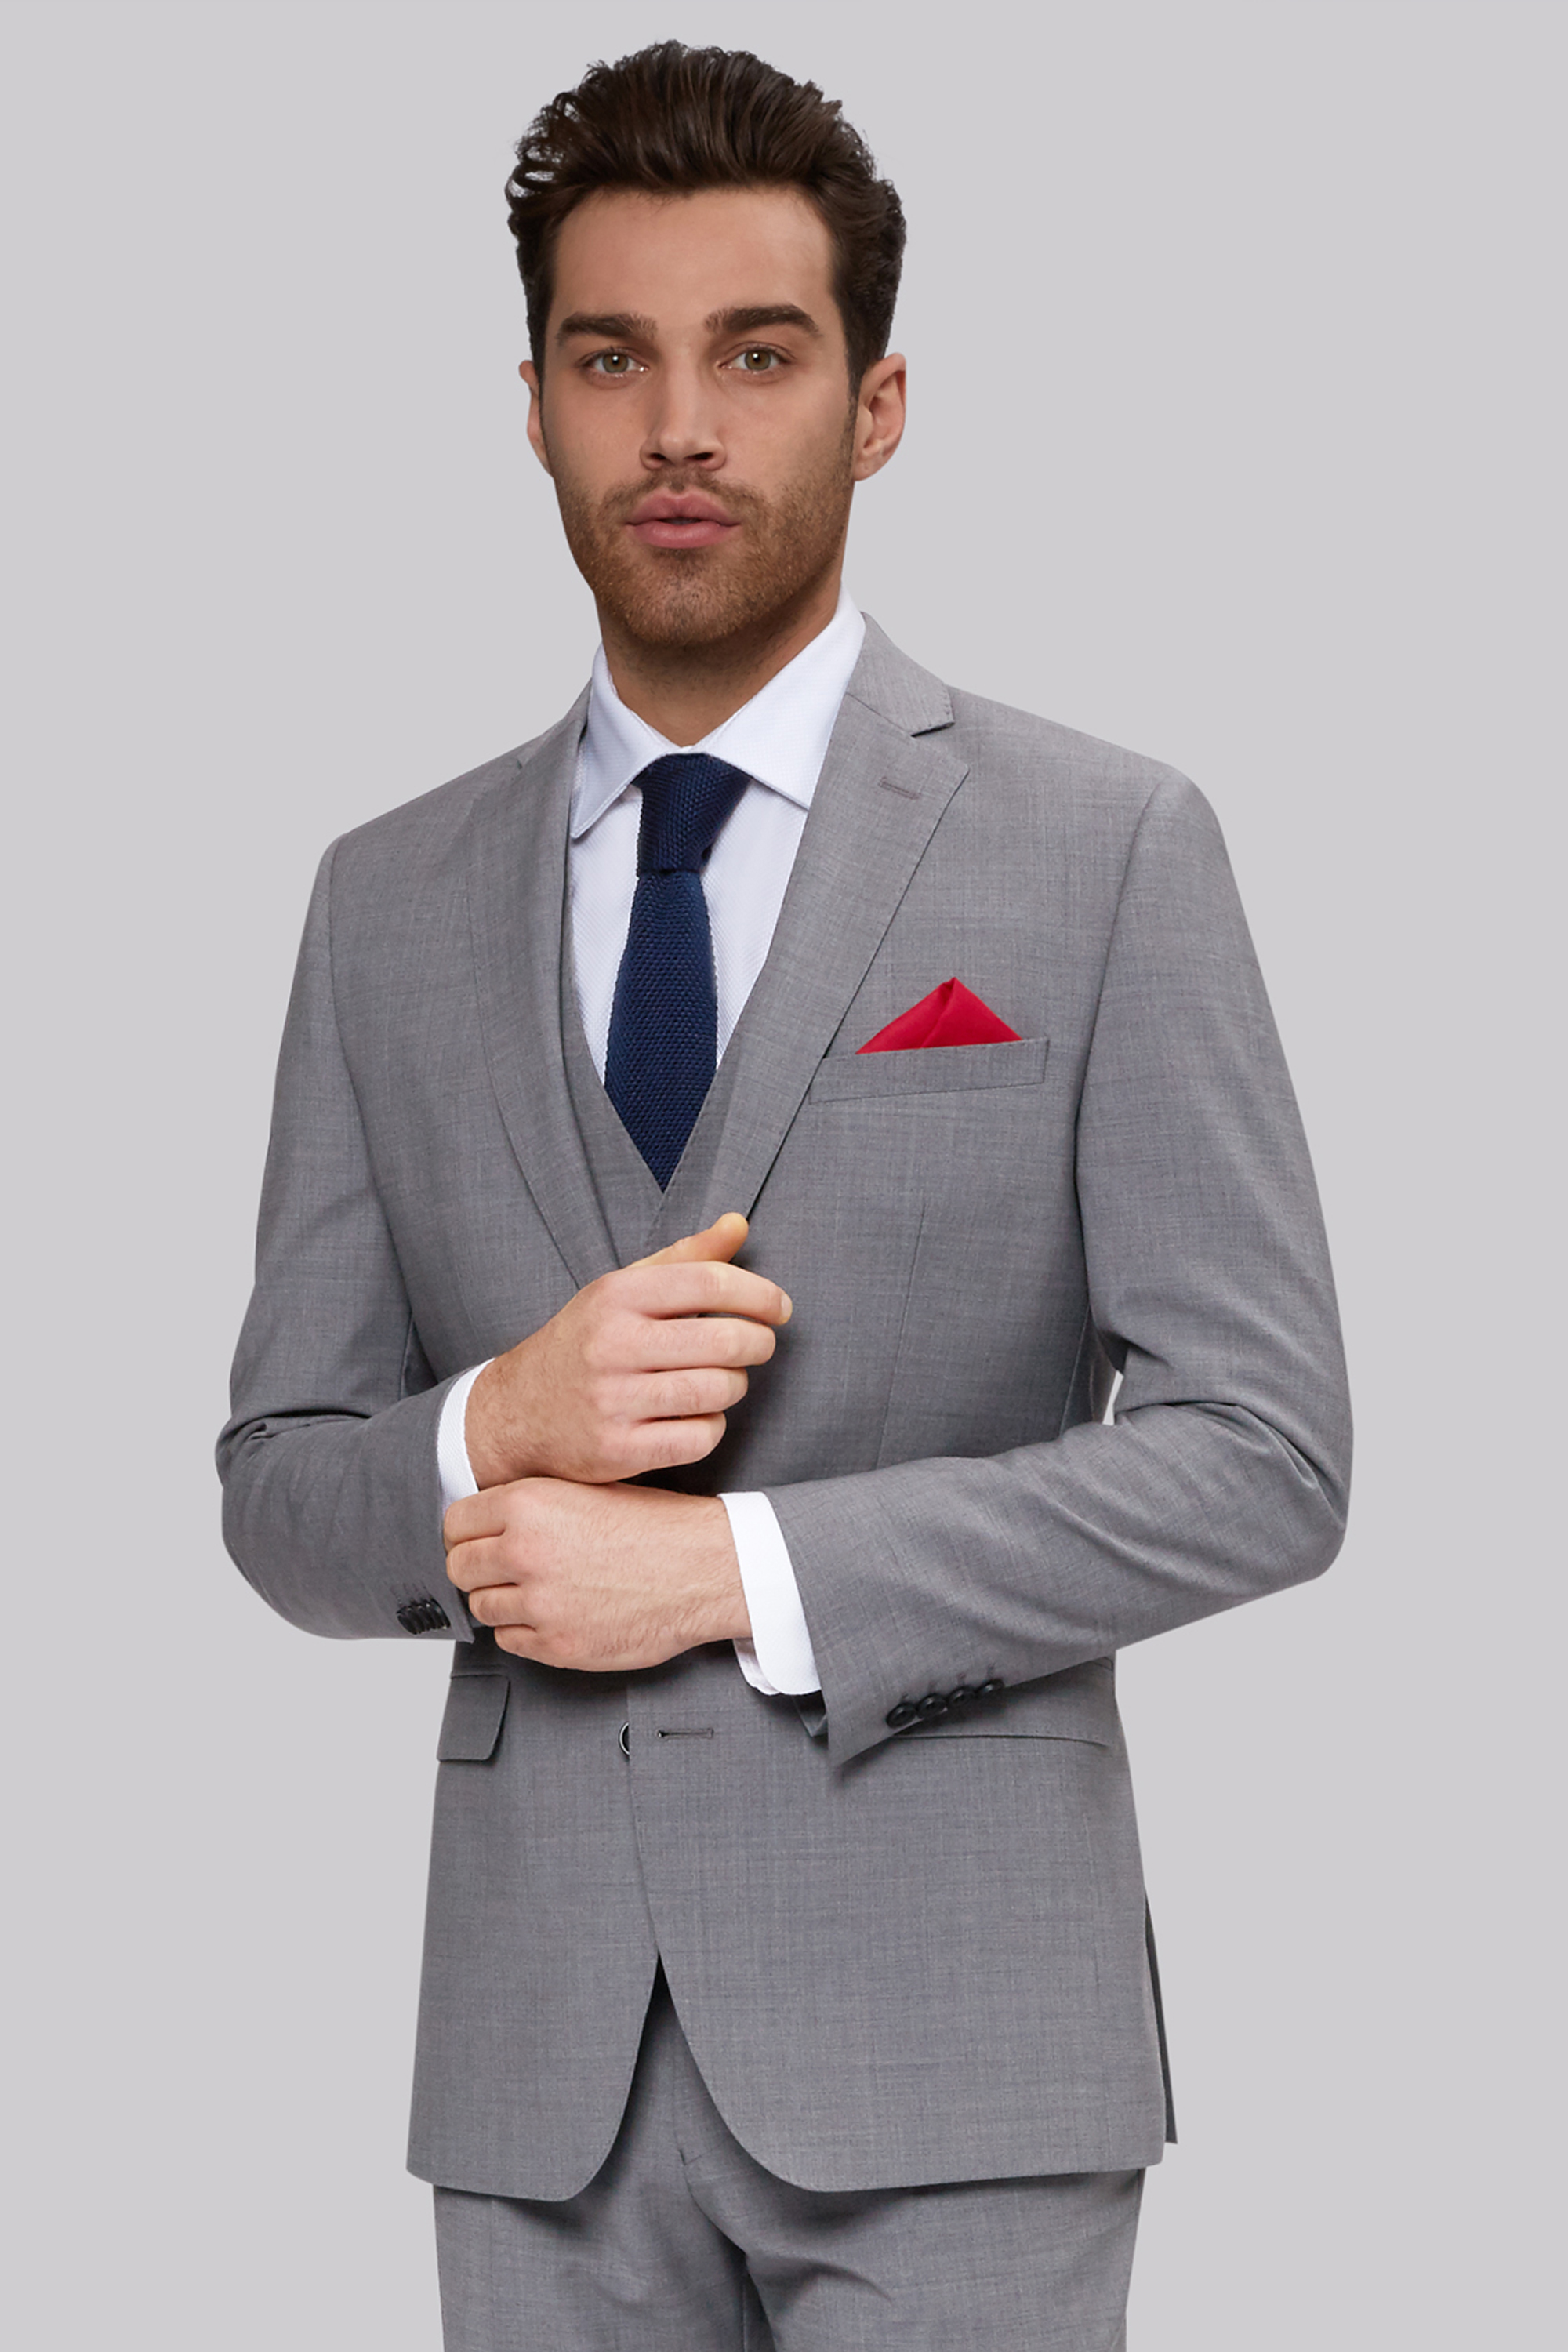 Find light gray suit from a vast selection of Suits for Men. Get great deals on eBay!